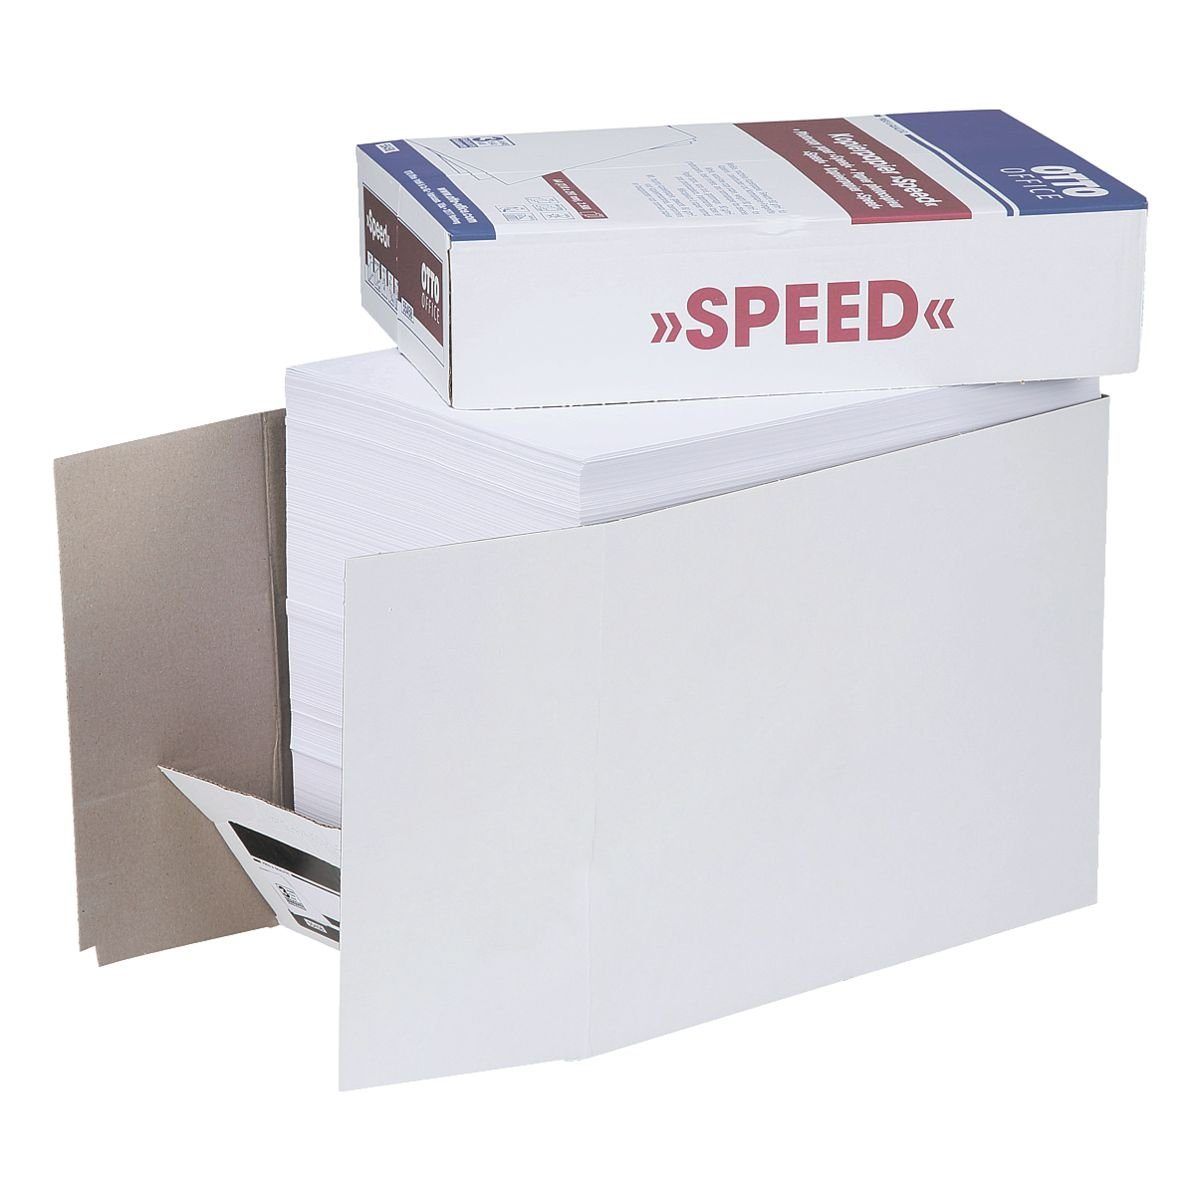 OTTO Office Standard Öko-Box Kopierpapier »SPEED«